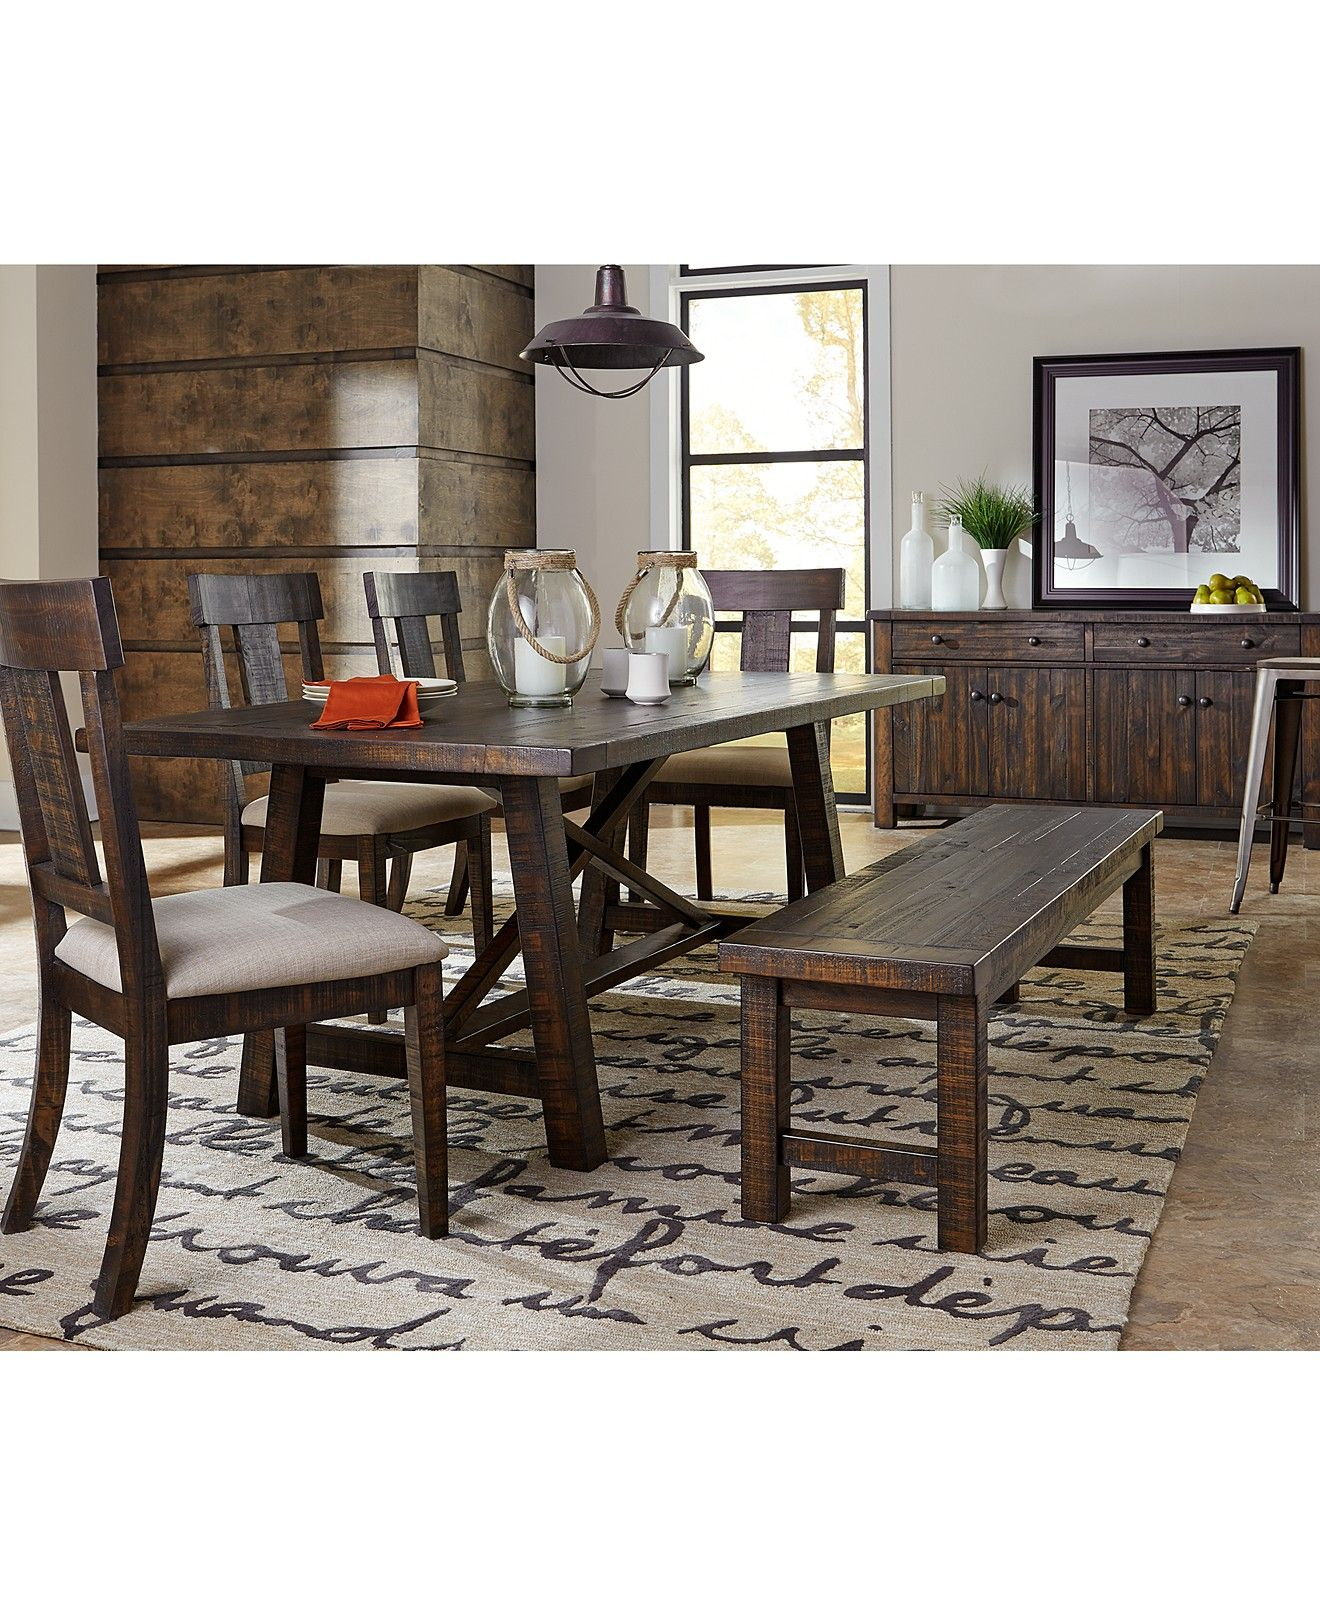 Ember Dining Room Furniture Collection